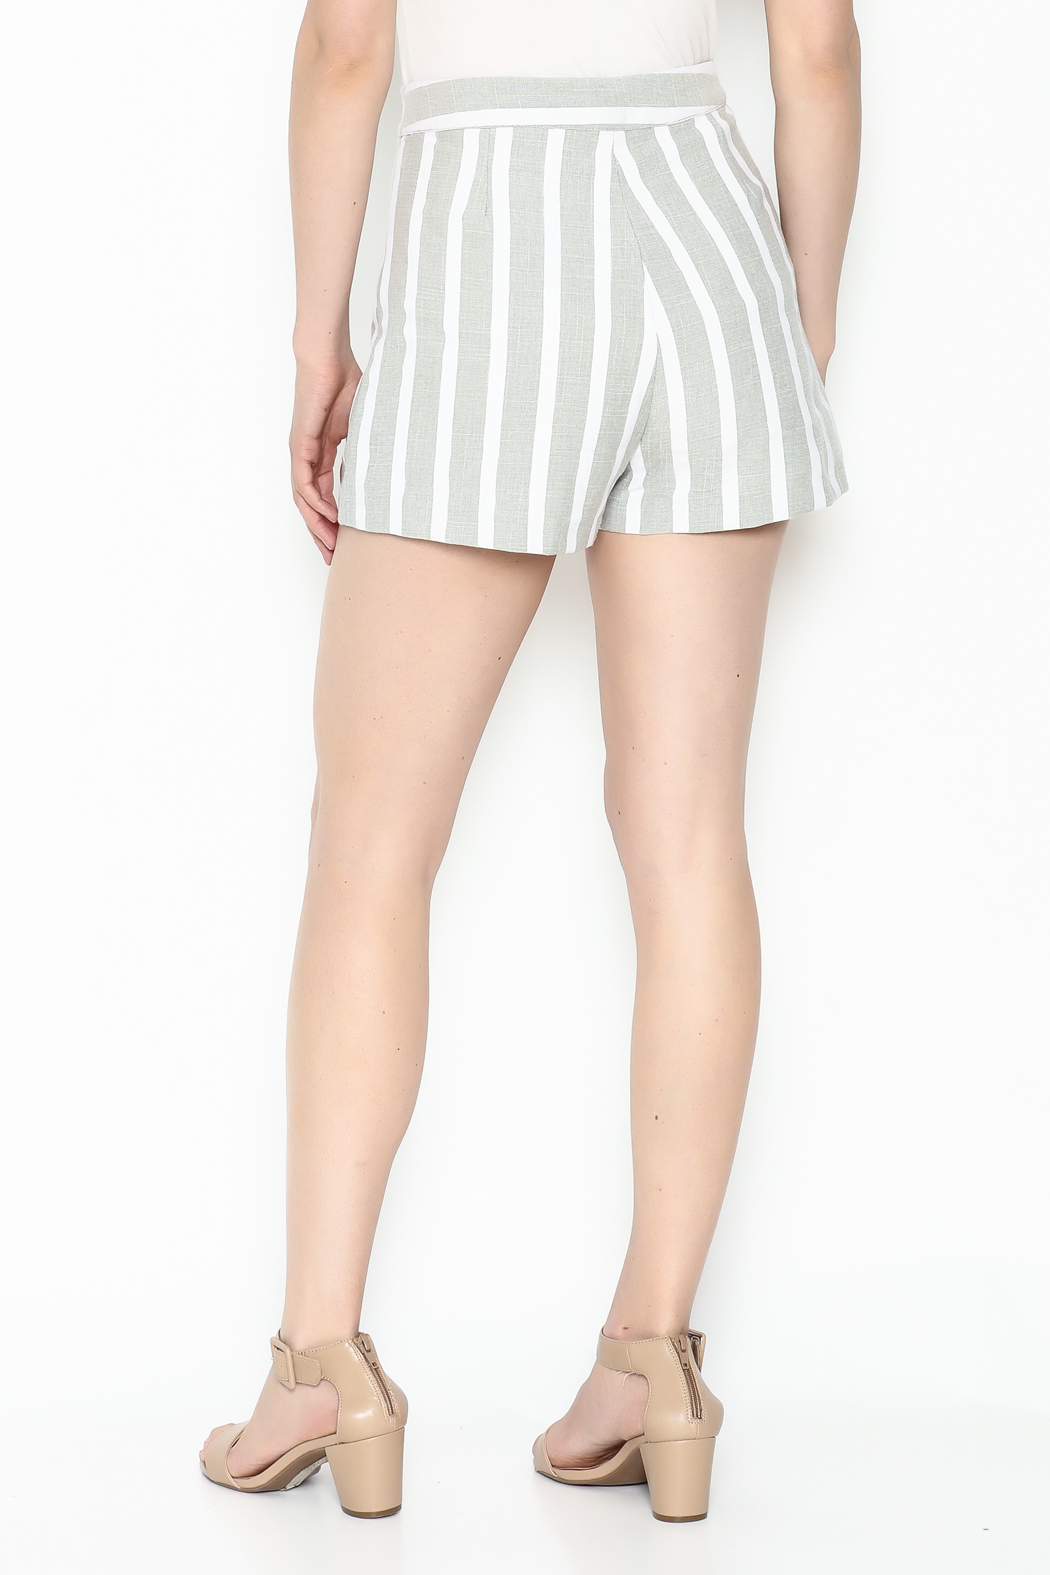 After Market Striped Grey Shorts - Back Cropped Image